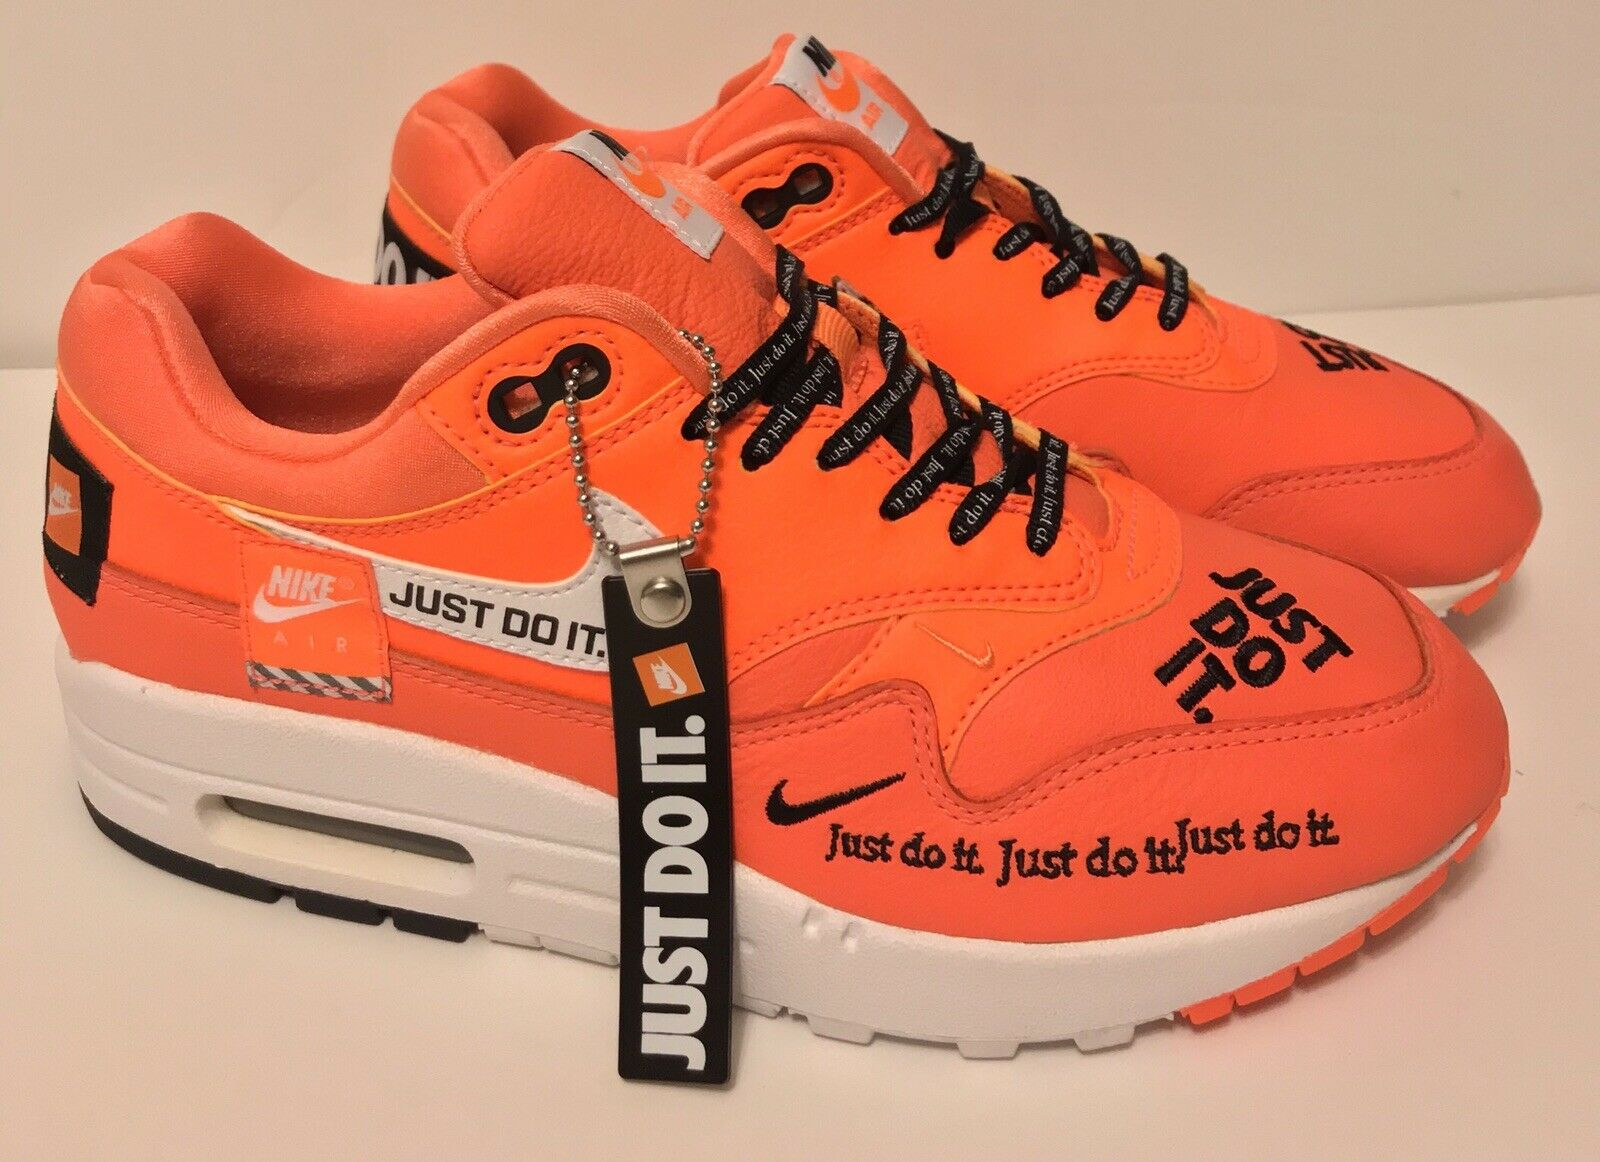 Nike Air Max 1 LX Just Do It Total Orange Running Shoes 917691 800 Size 12